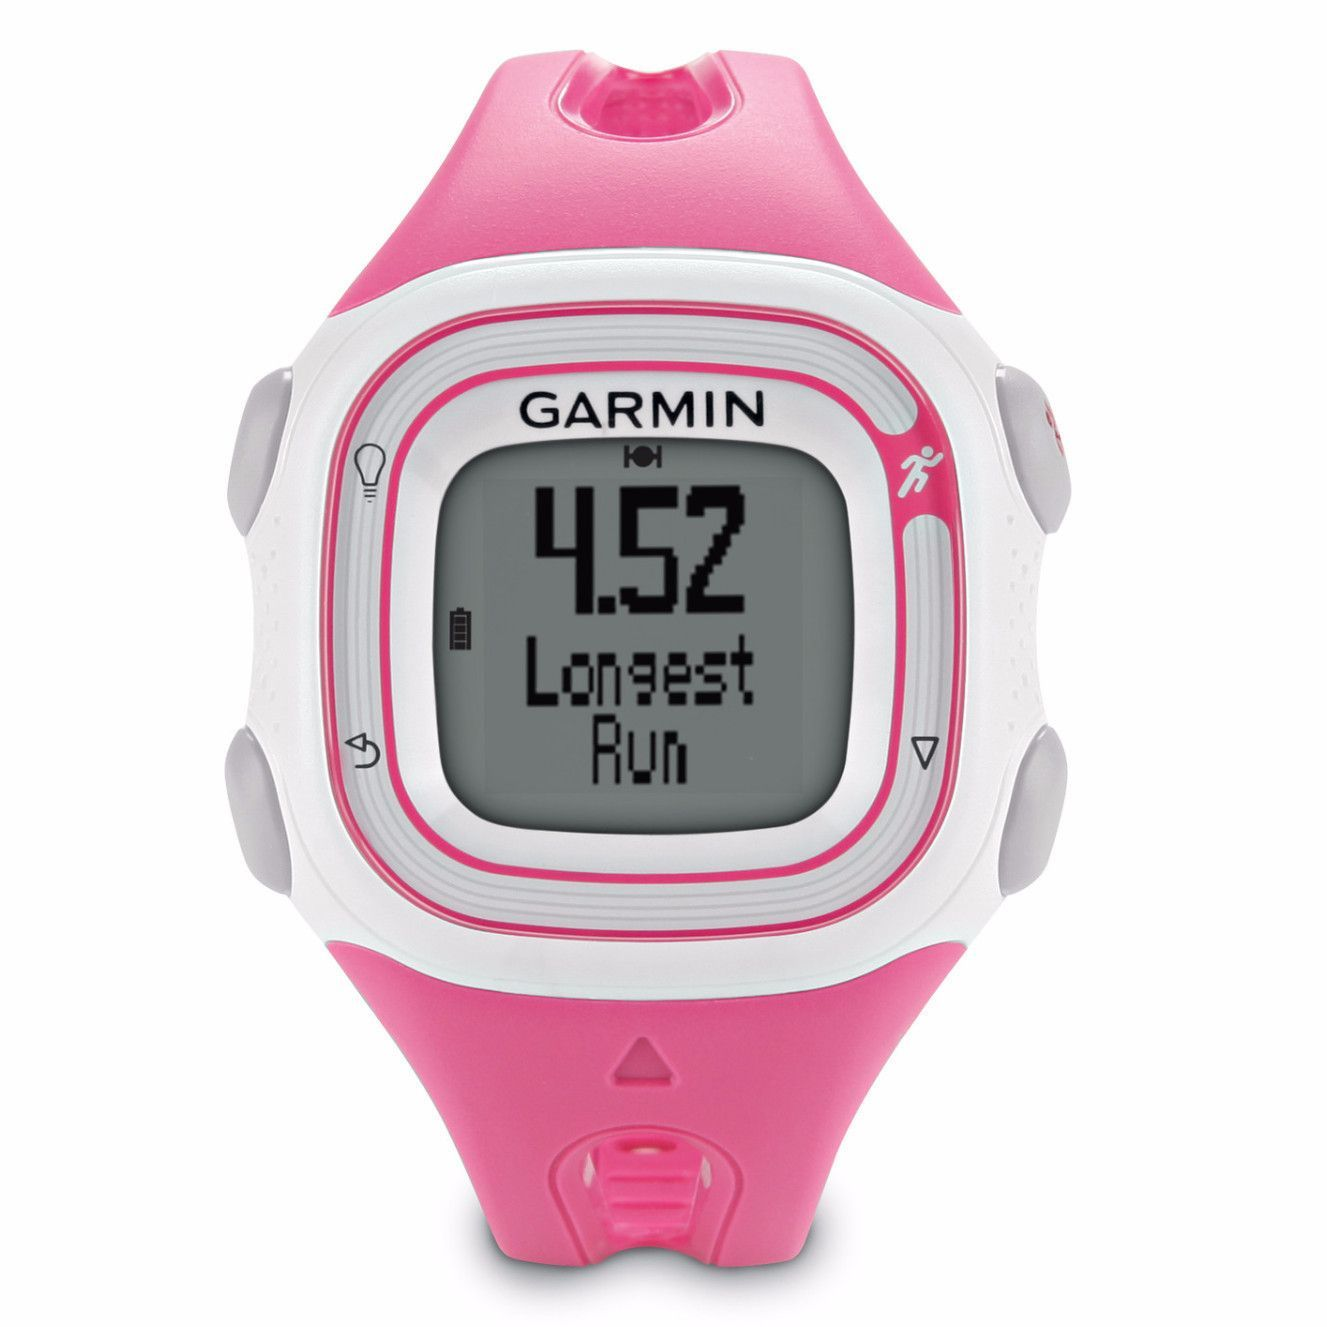 Garmin Forerunner 10 Women's GPS Watch (Pink) - I really wish I had gotten this one. I have the Polar FT4, and although I love it, I wish it tracked miles I run. (MH)